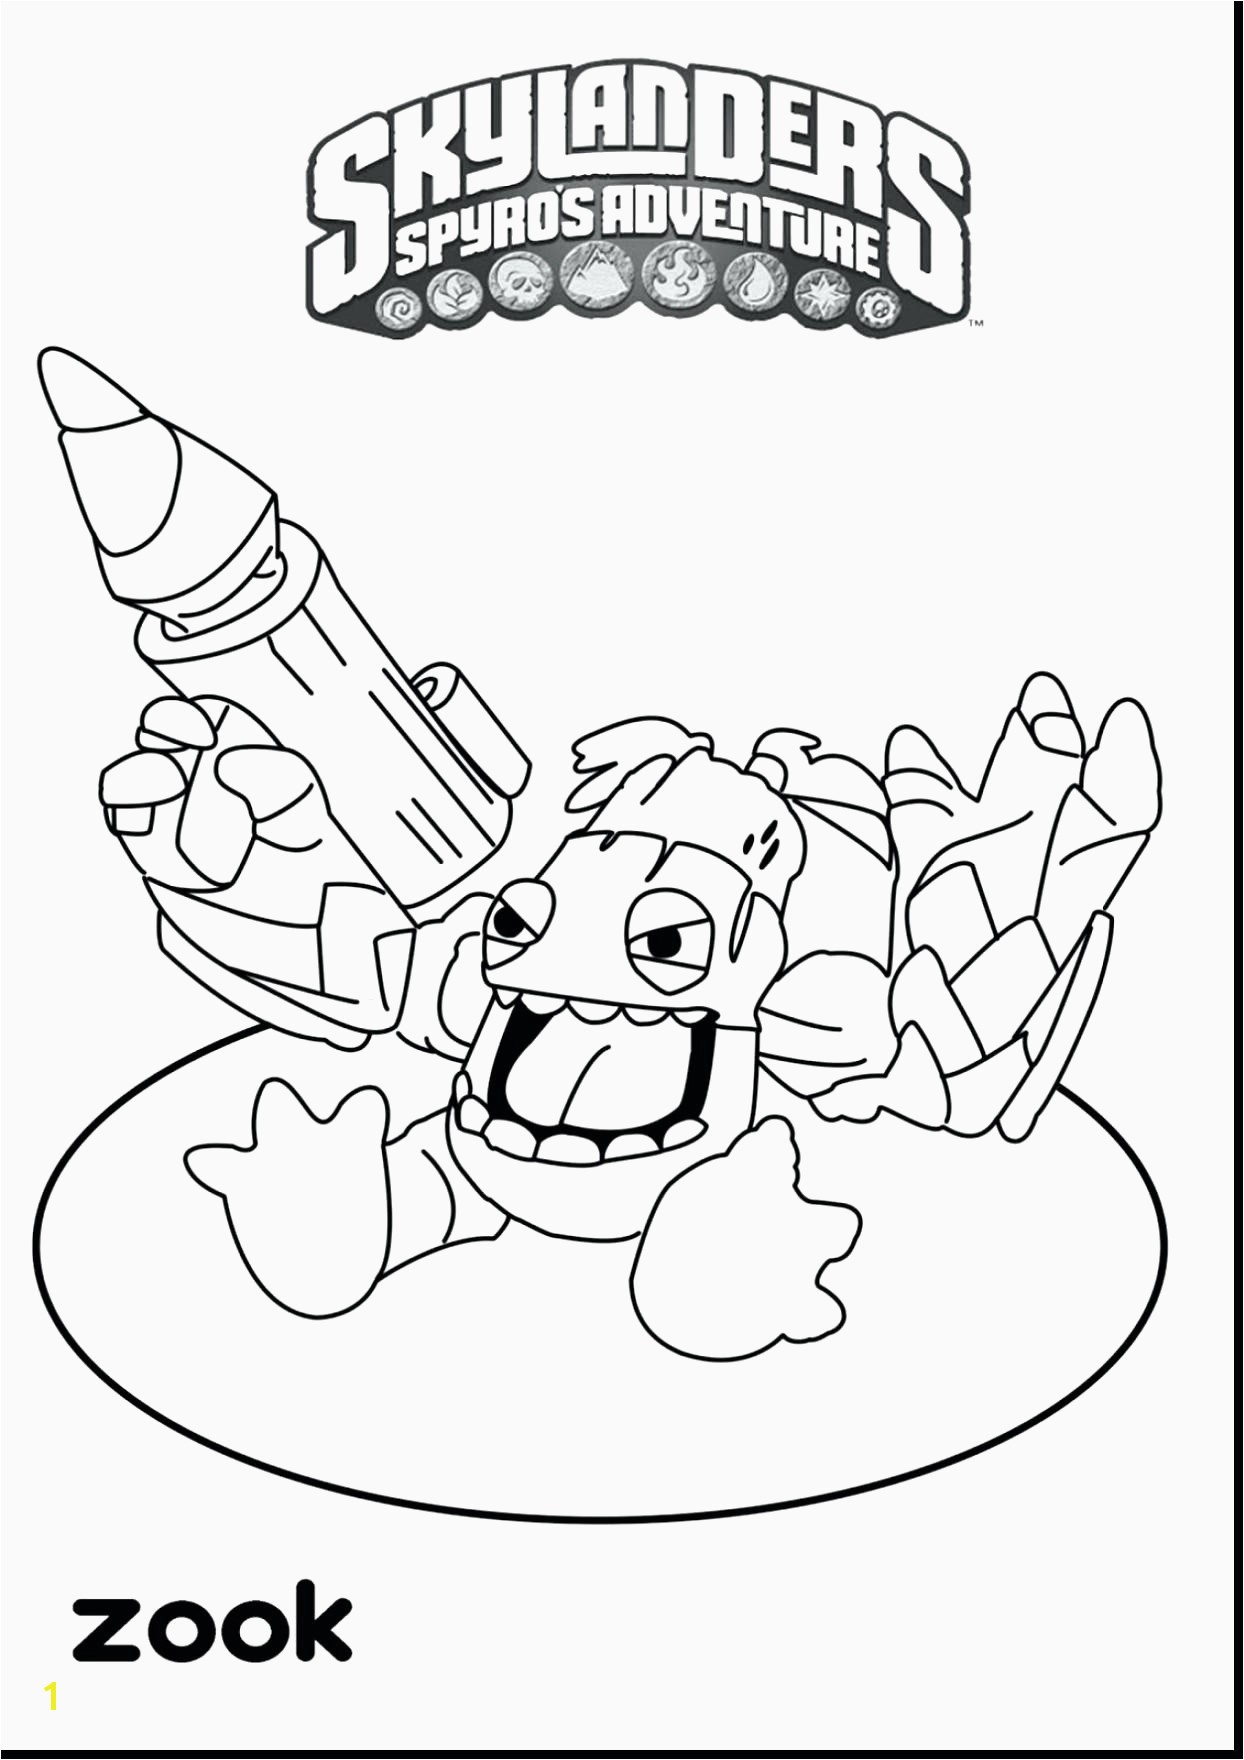 Free Teenage Coloring Pages Luxury Teenage Mutant Ninja Turtles Coloring Pages 44 Free Printable – Fun